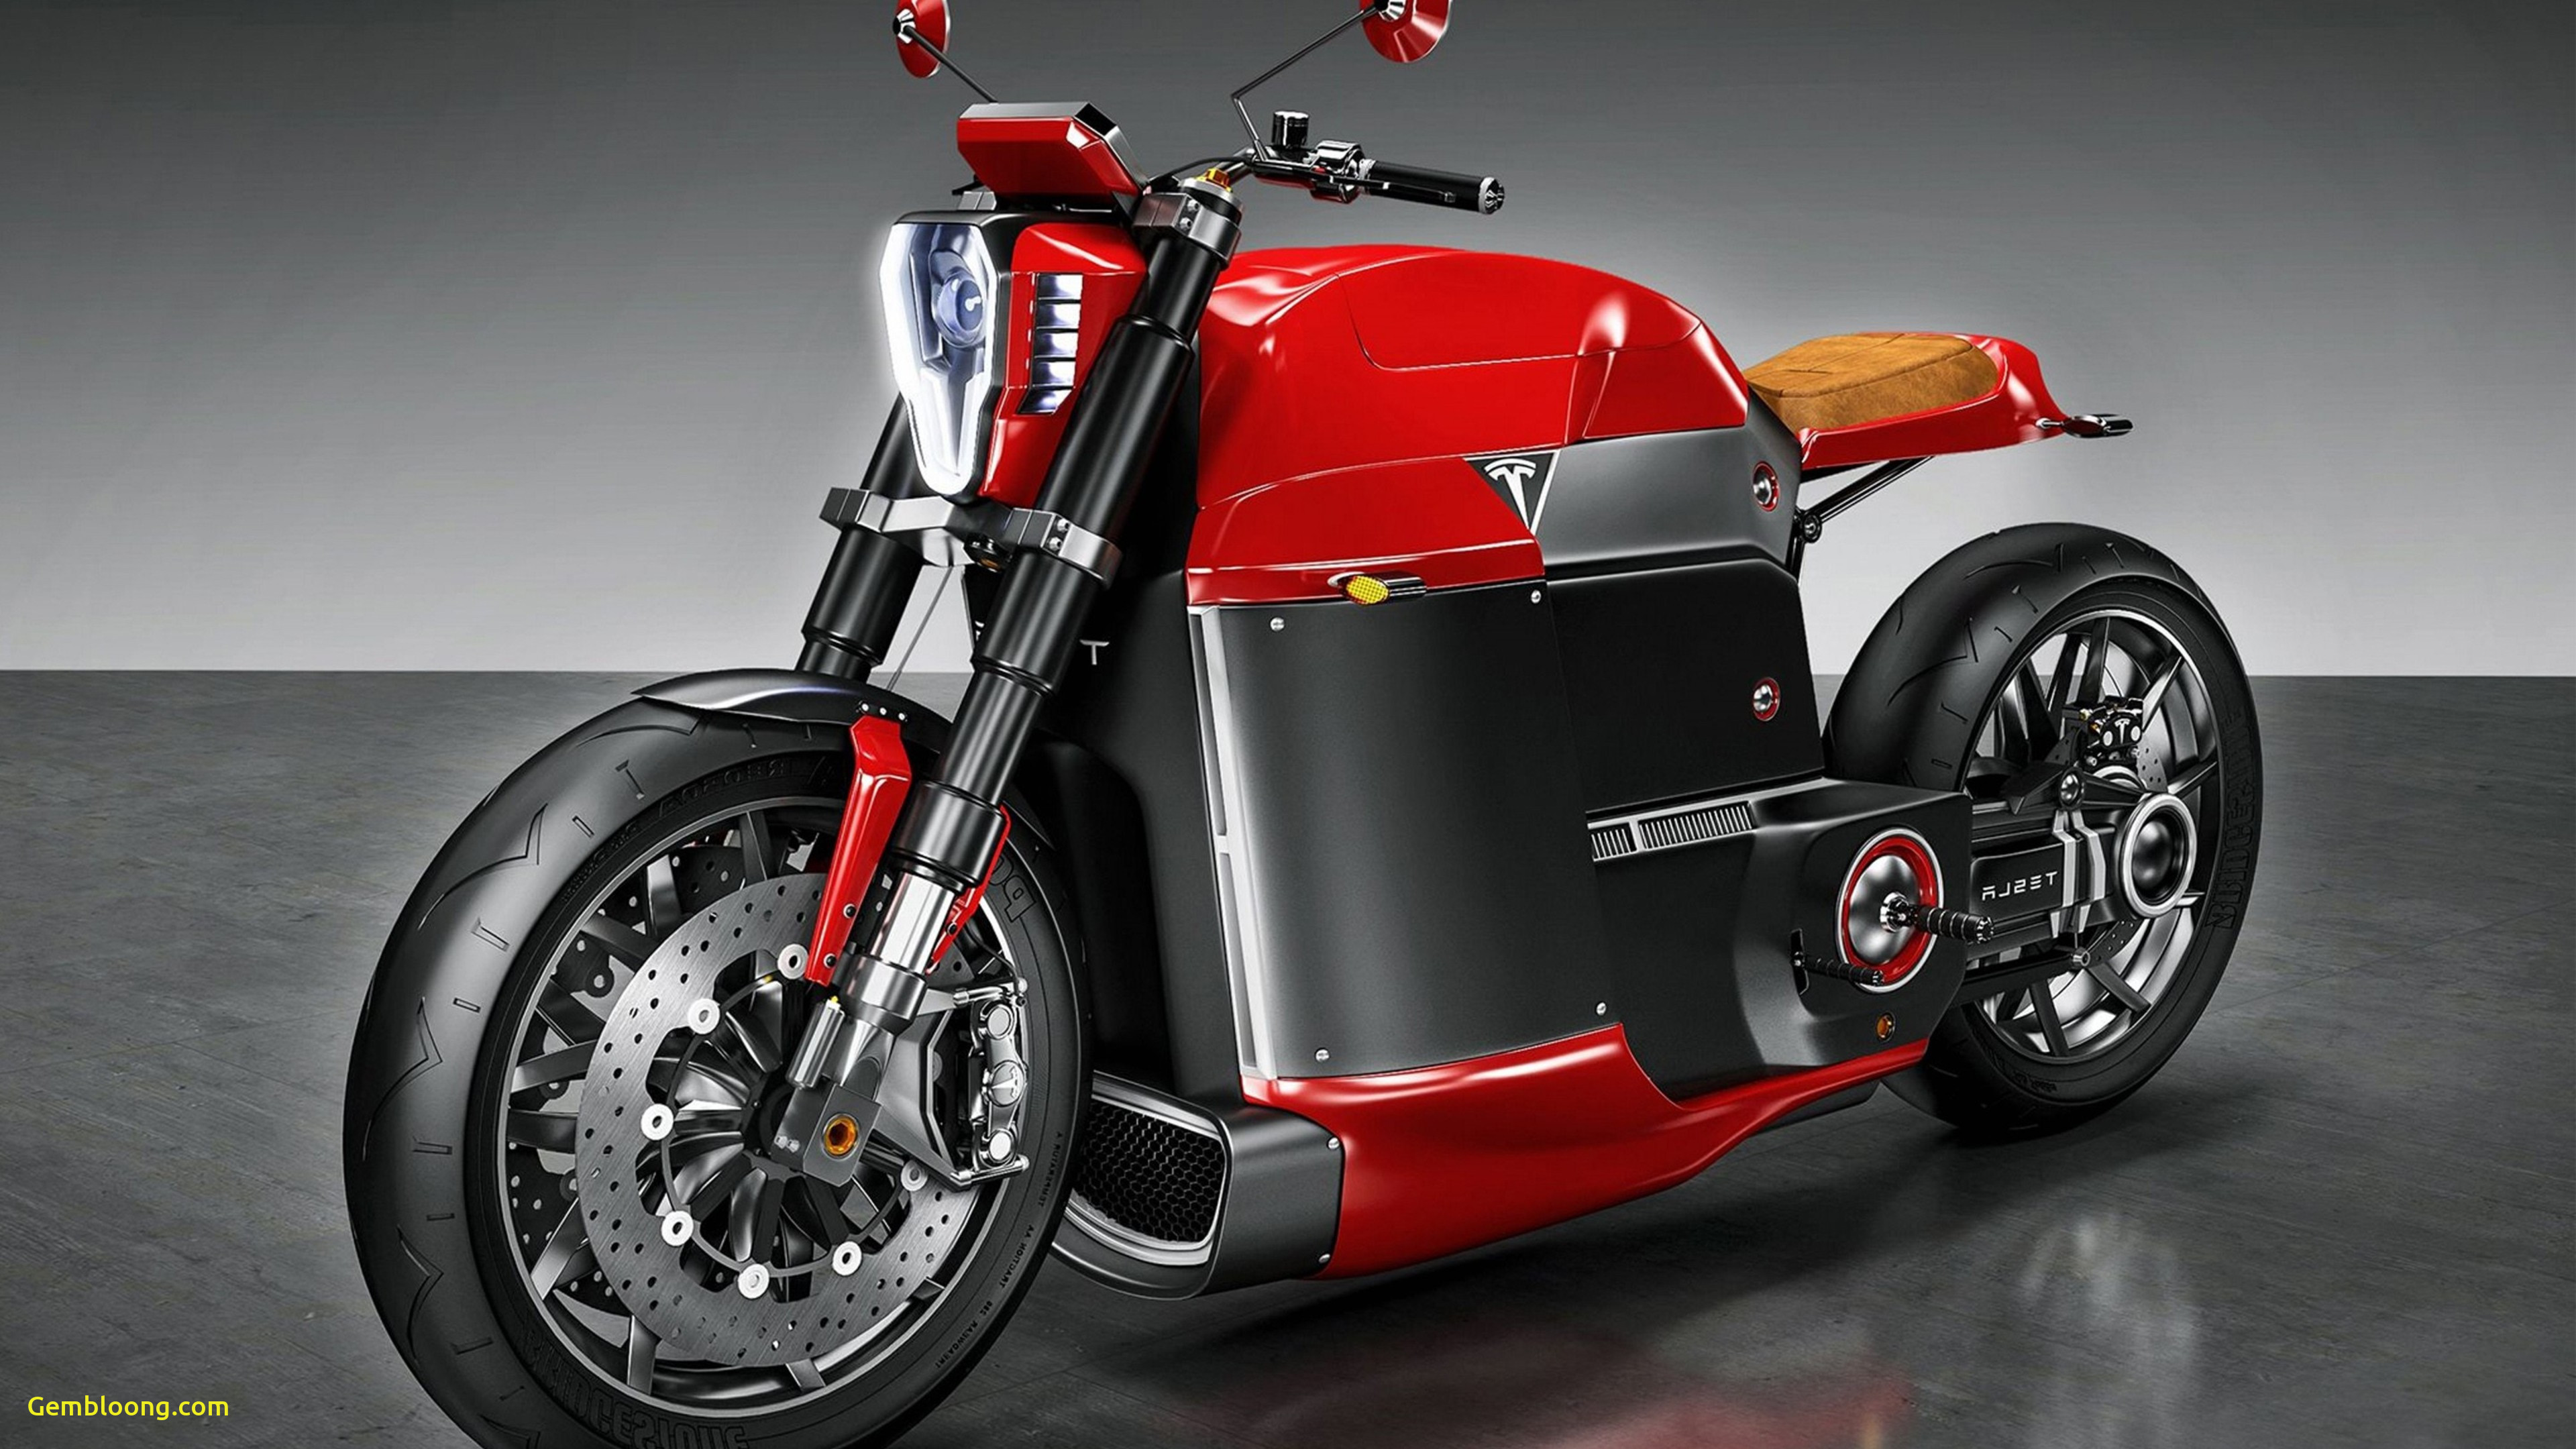 Will Tesla Make A Motorcycle Lovely Tesla Electric Motorcycle Hd Bikes 4k Wallpapers Images